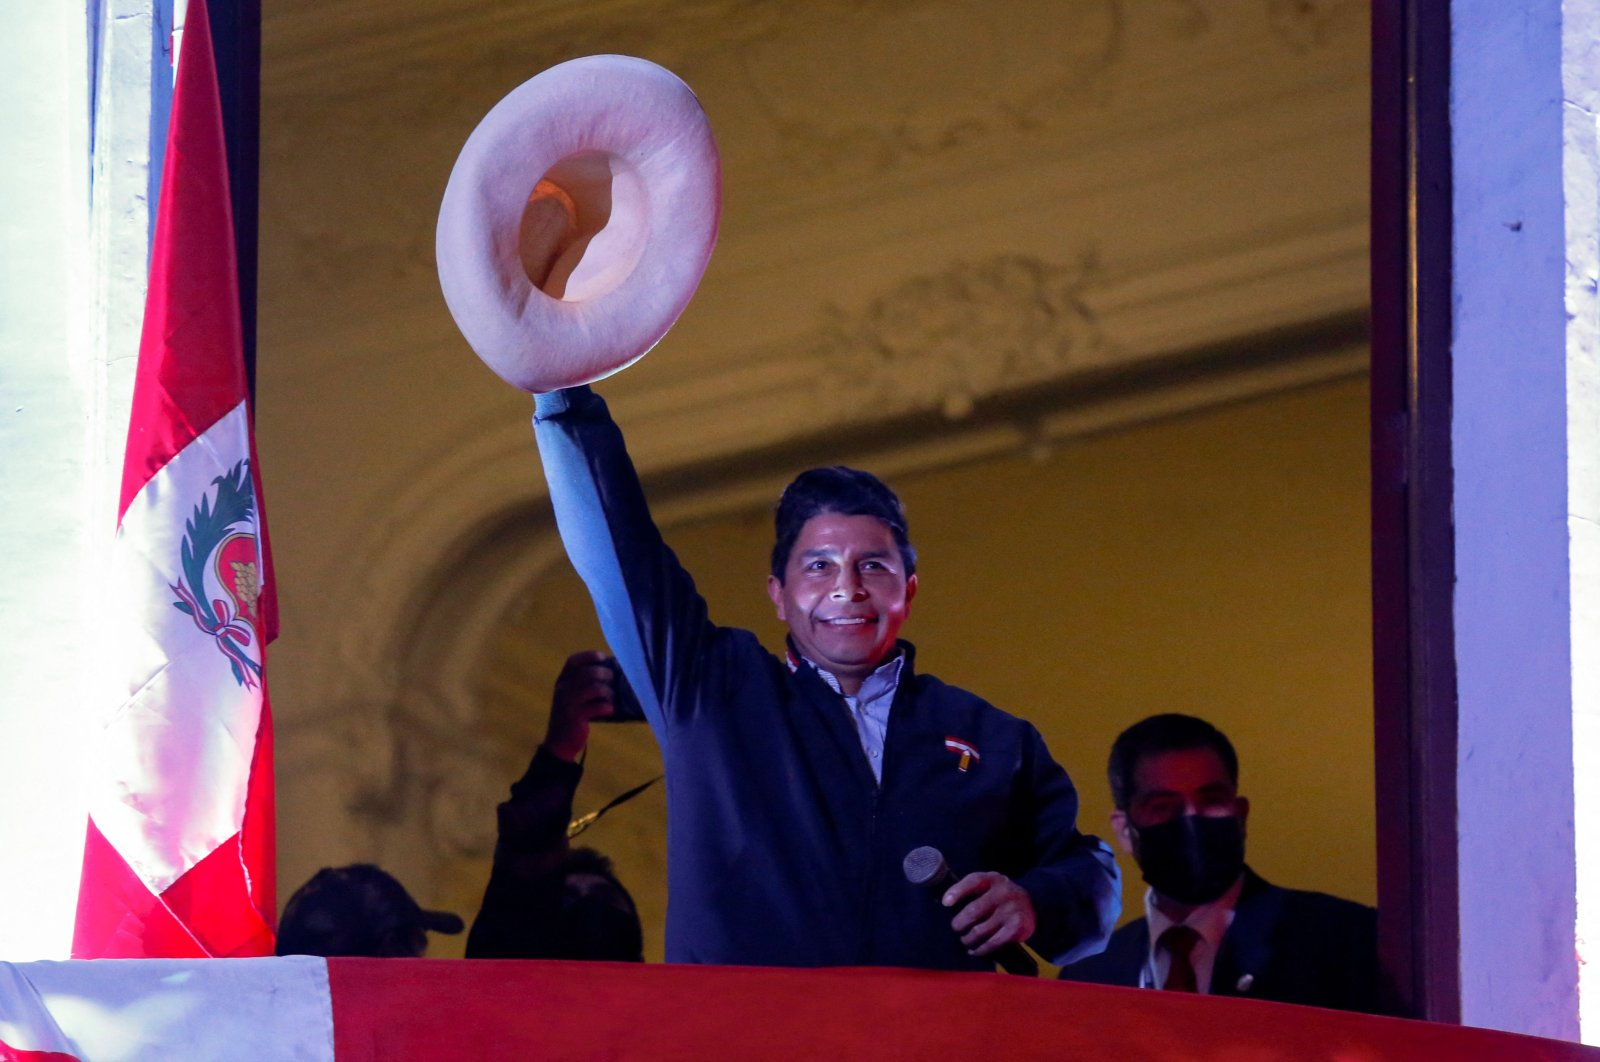 Peru's left-wing presidential candidate Pedro Castillo of the Peru Libre party, gestures to his supporters from the balcony of his party headquarters in Lima, Peru, June 10, 2021. (AFP Photo)